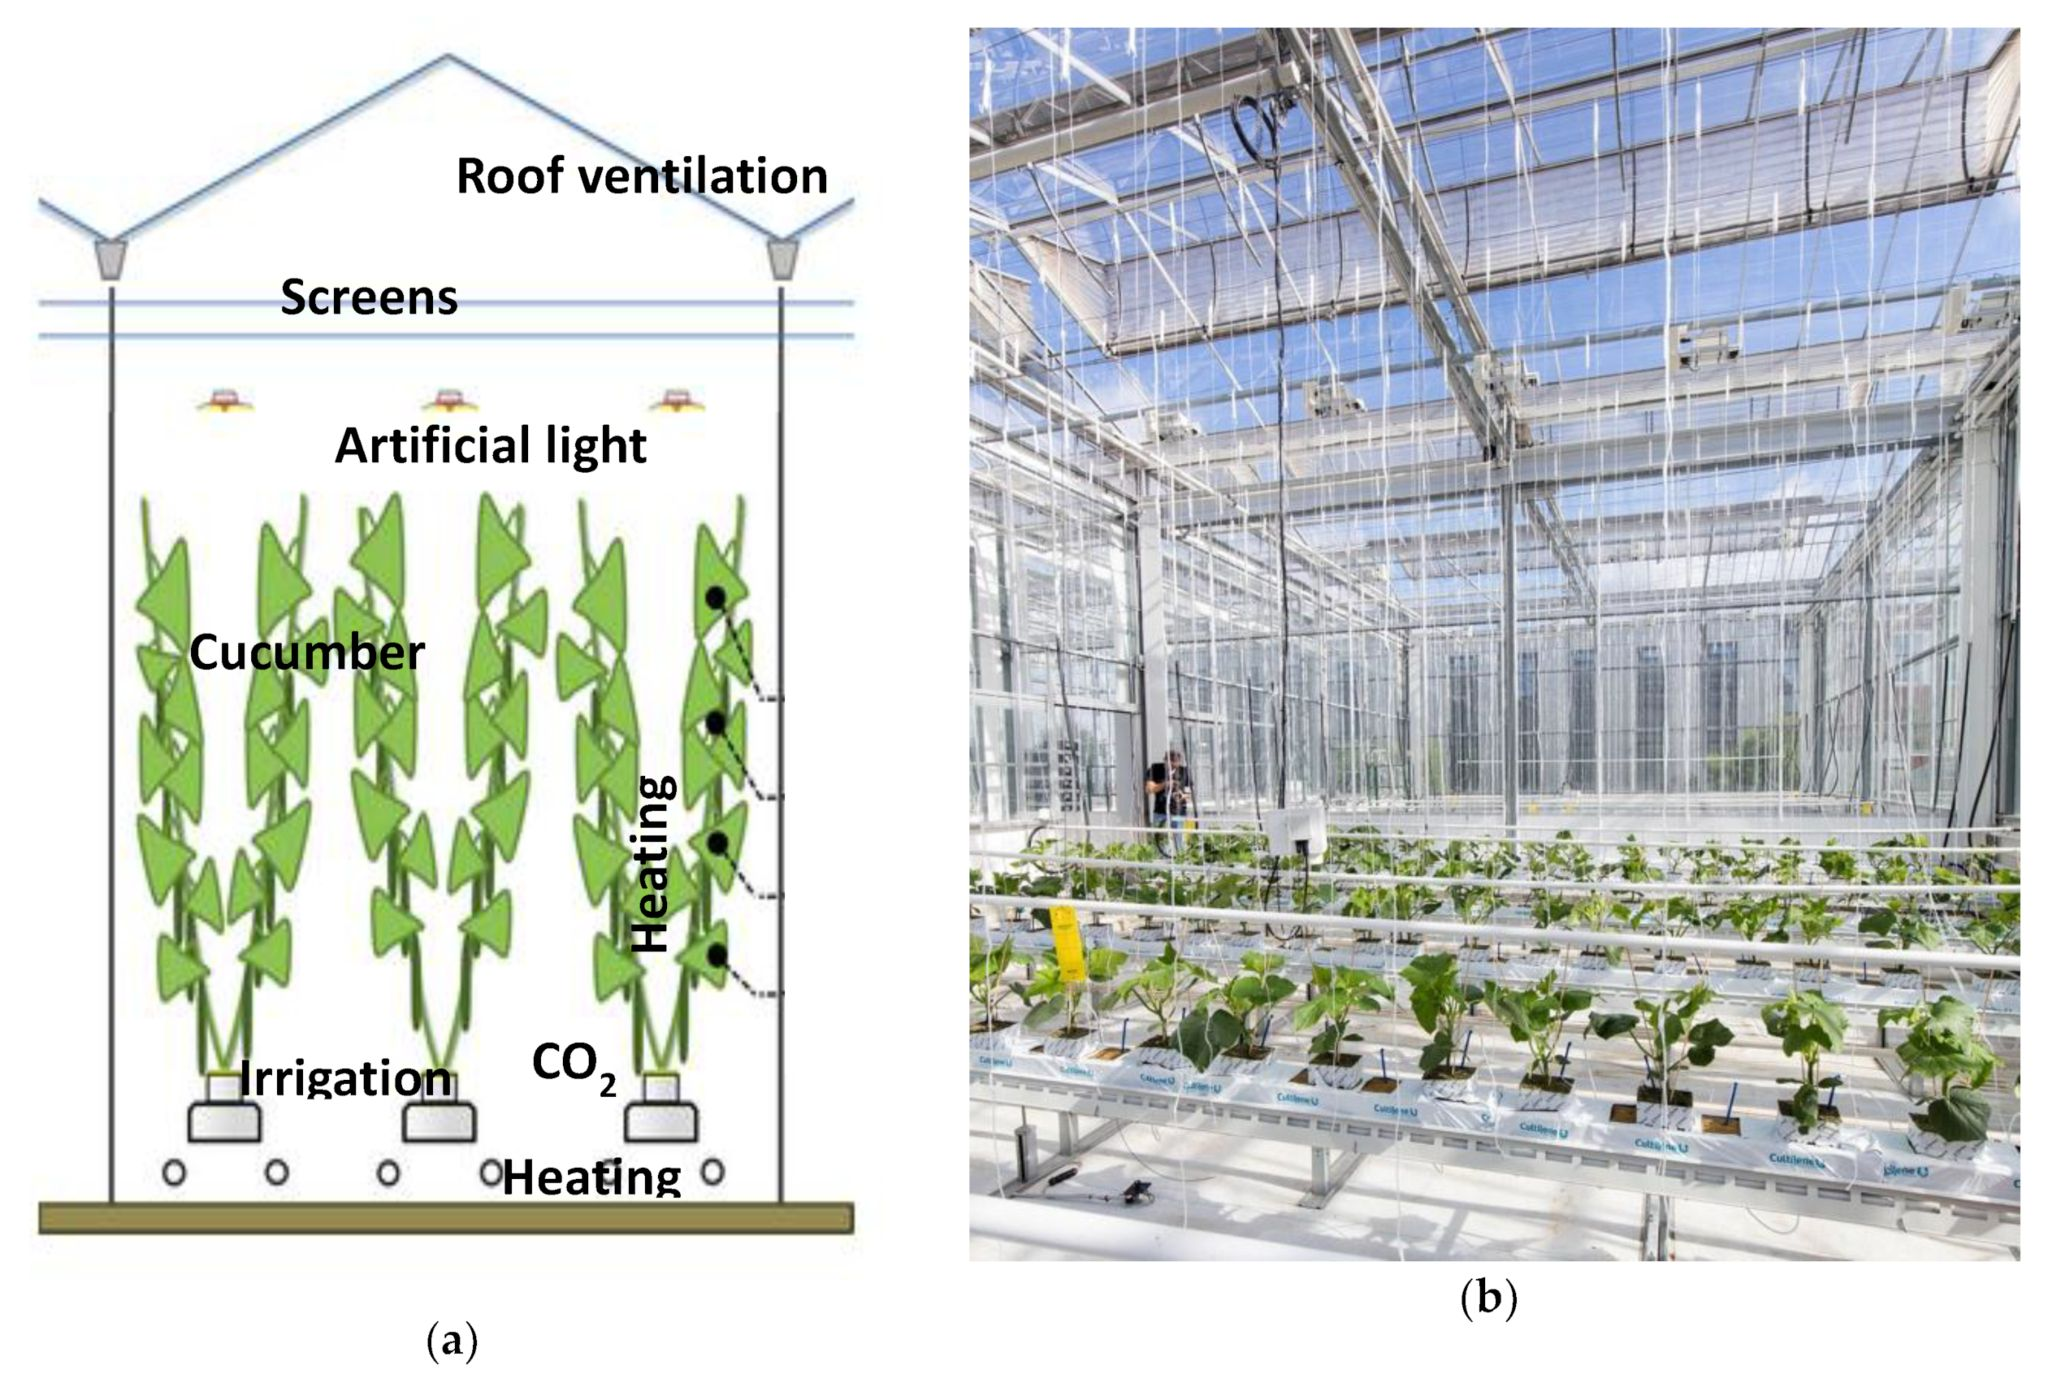 Remote Control Of Greenhouse Vegetable Production With Artificial Intelligence Greenhouse Climate Irrigation And Crop Production Greenhouse Vegetables Greenhouse Greenhouse Growing